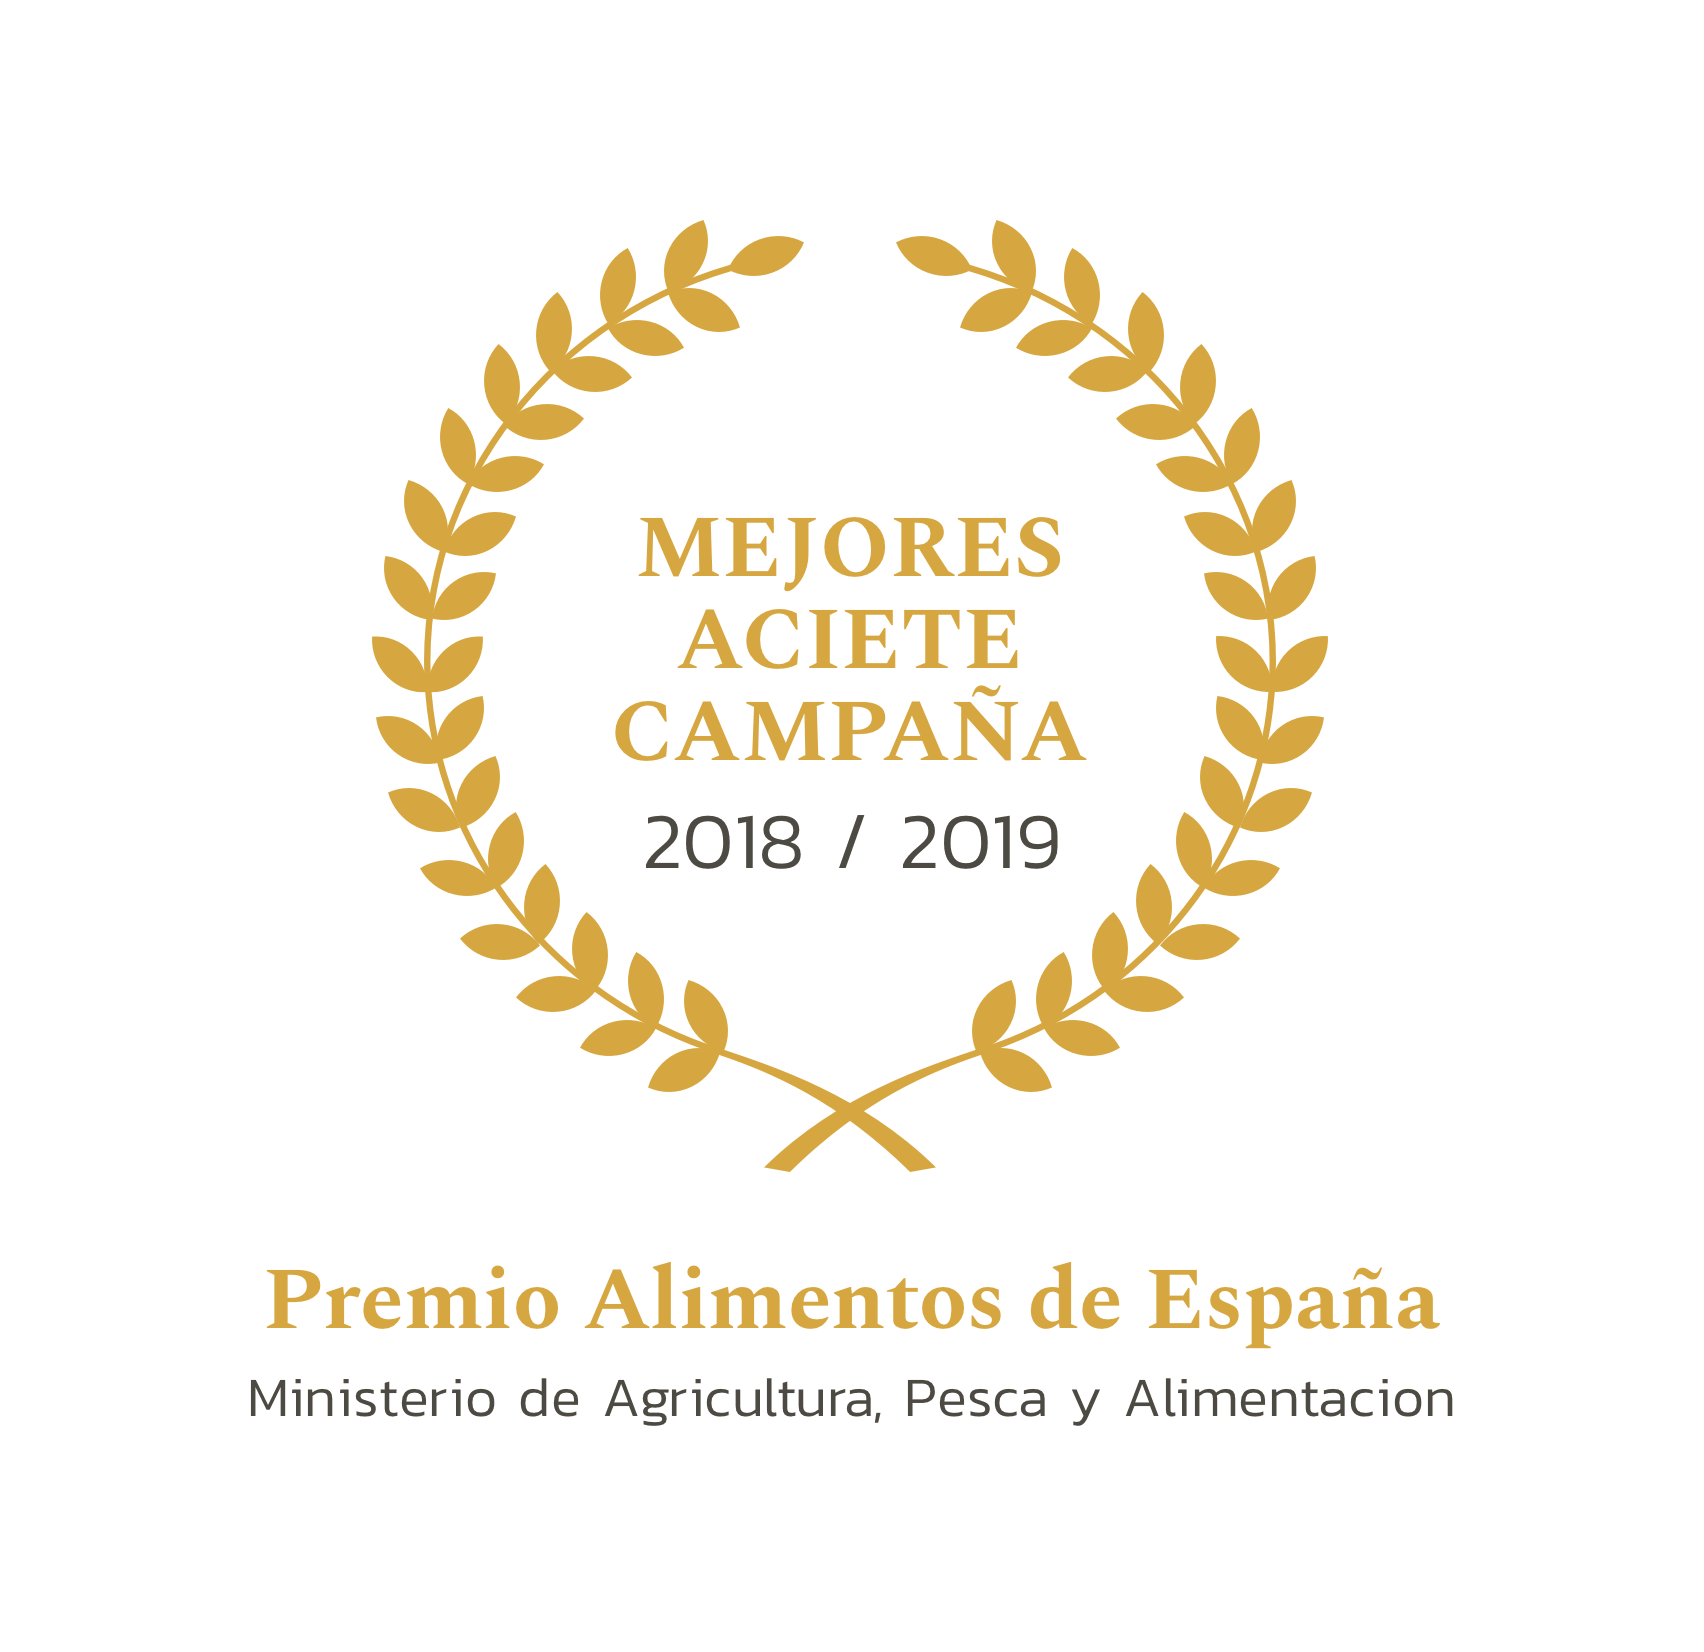 ALIMENTOS DE ESPAÑA Best Olive Campaign Awarded by the Ministry of Agriculture